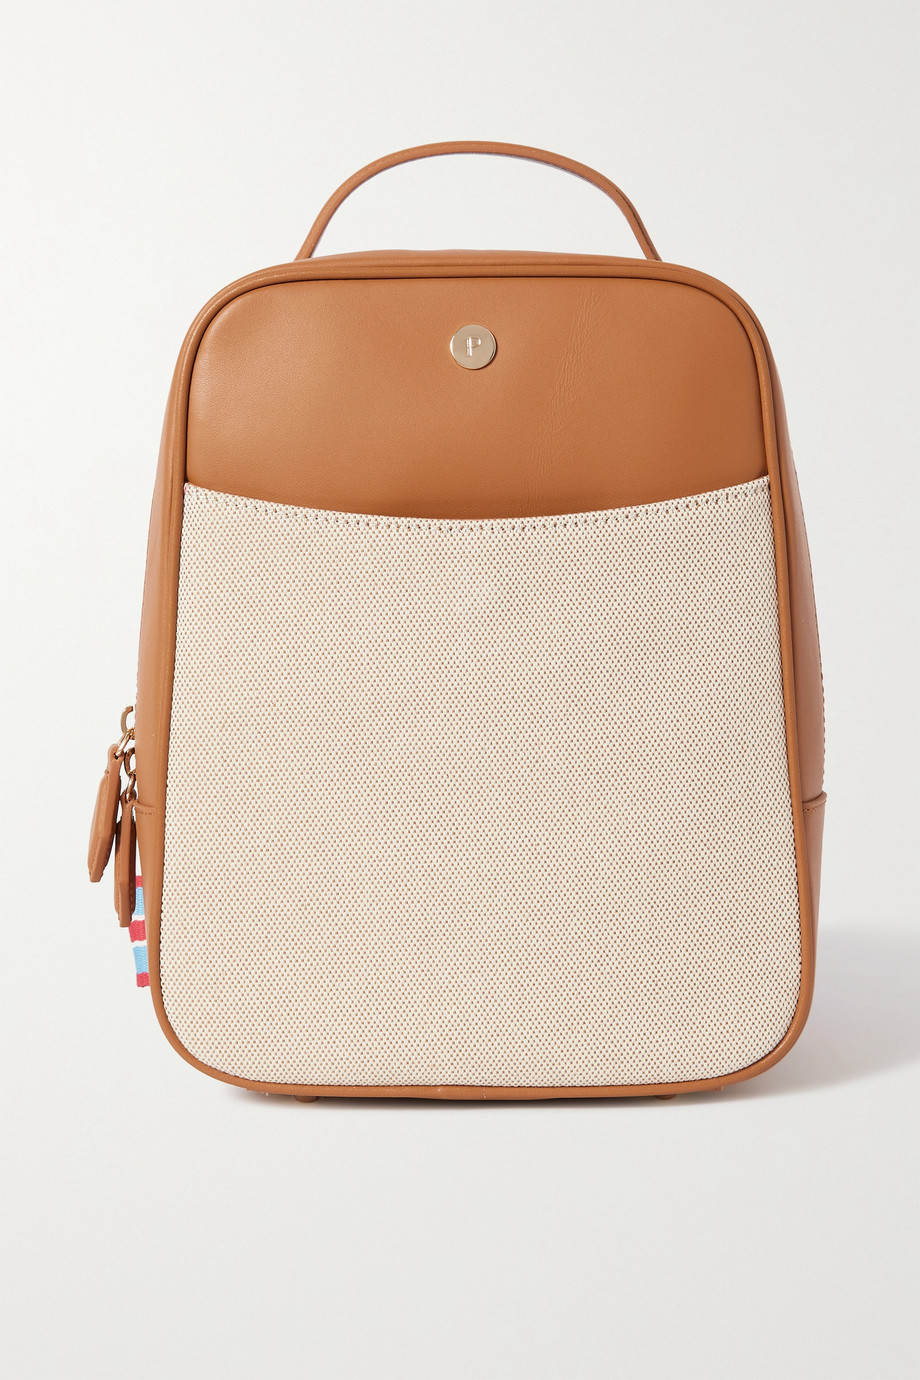 Paravel Cabana striped grosgrain-trimmed canvas and leather backpack